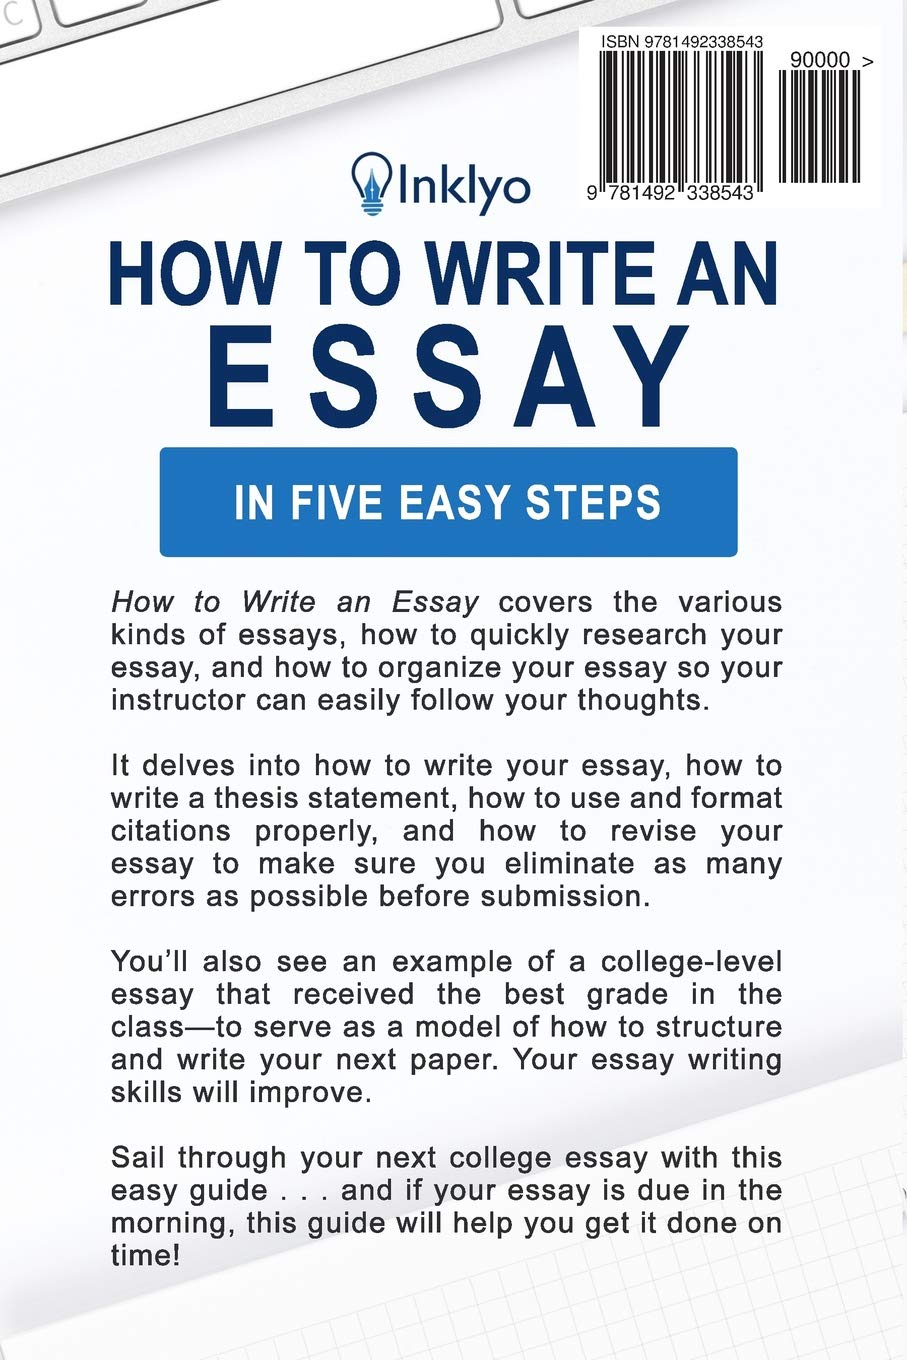 008 Essay Example How Write An Unbelievable To Ppt Tips On For A Scholarship Introduction With Thesis Statement Full